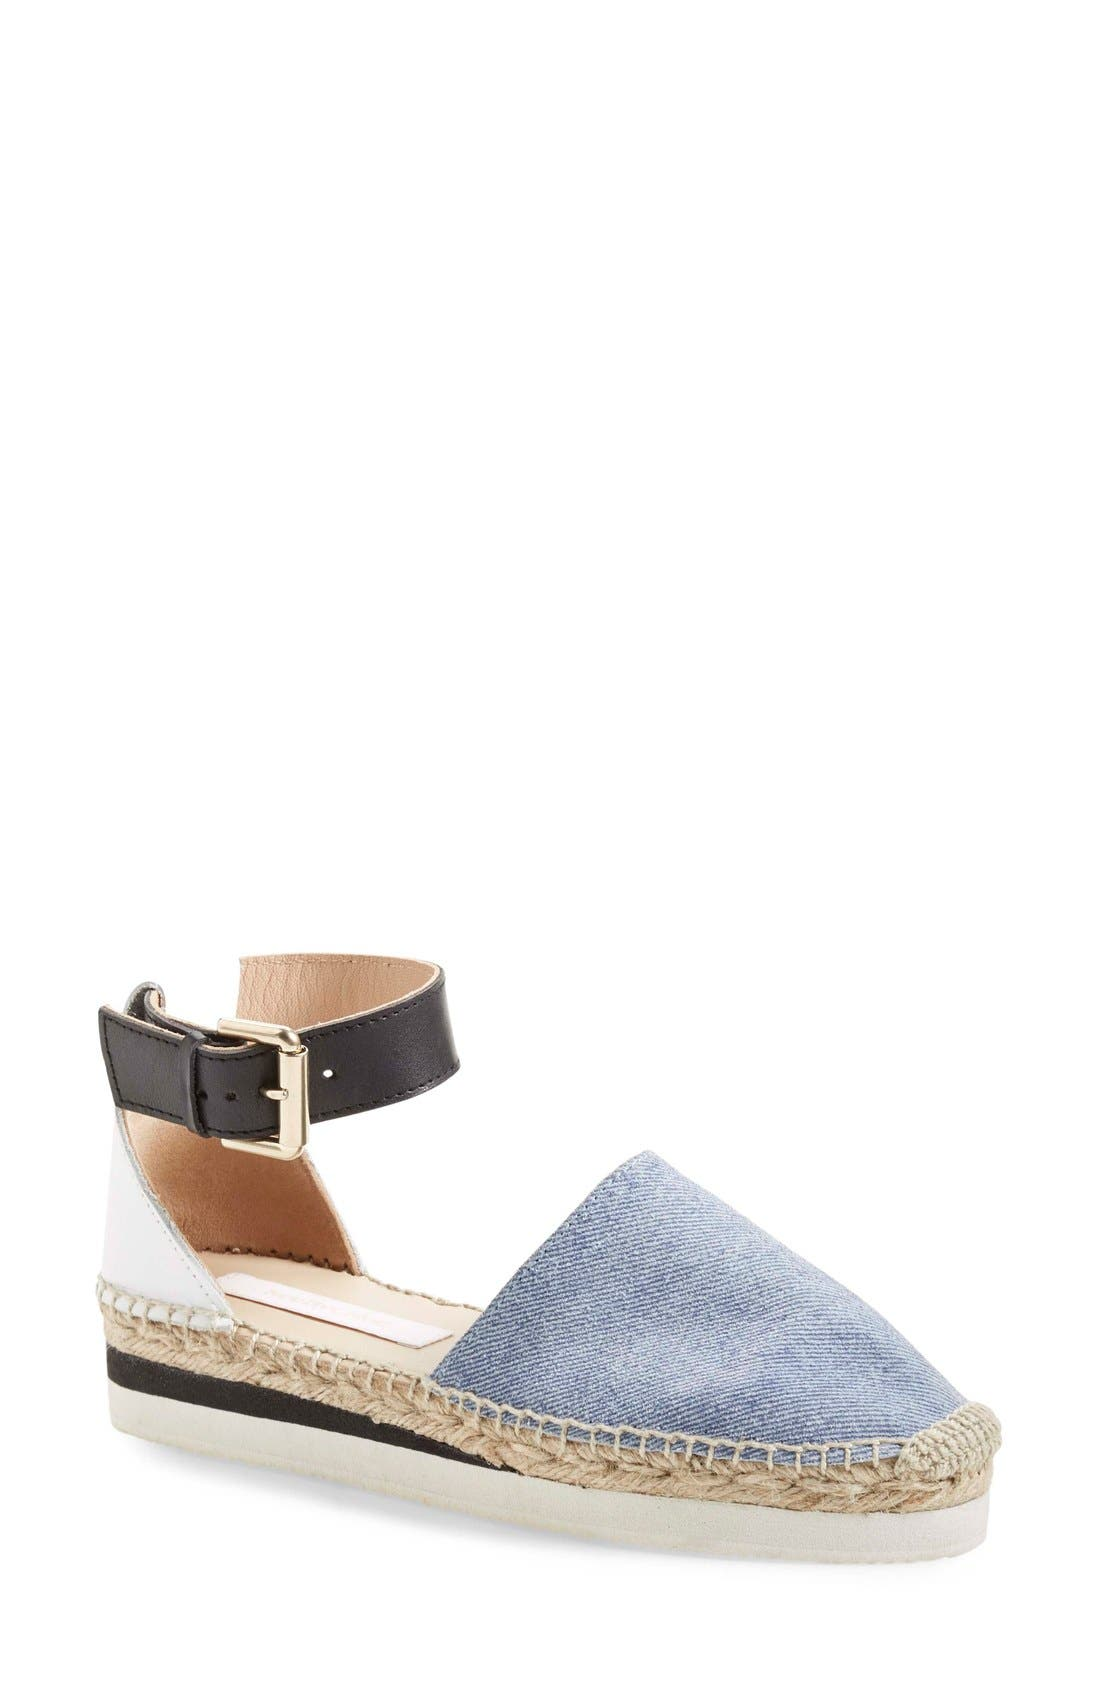 'Glyn' Espadrille Flat, Main, color, 460